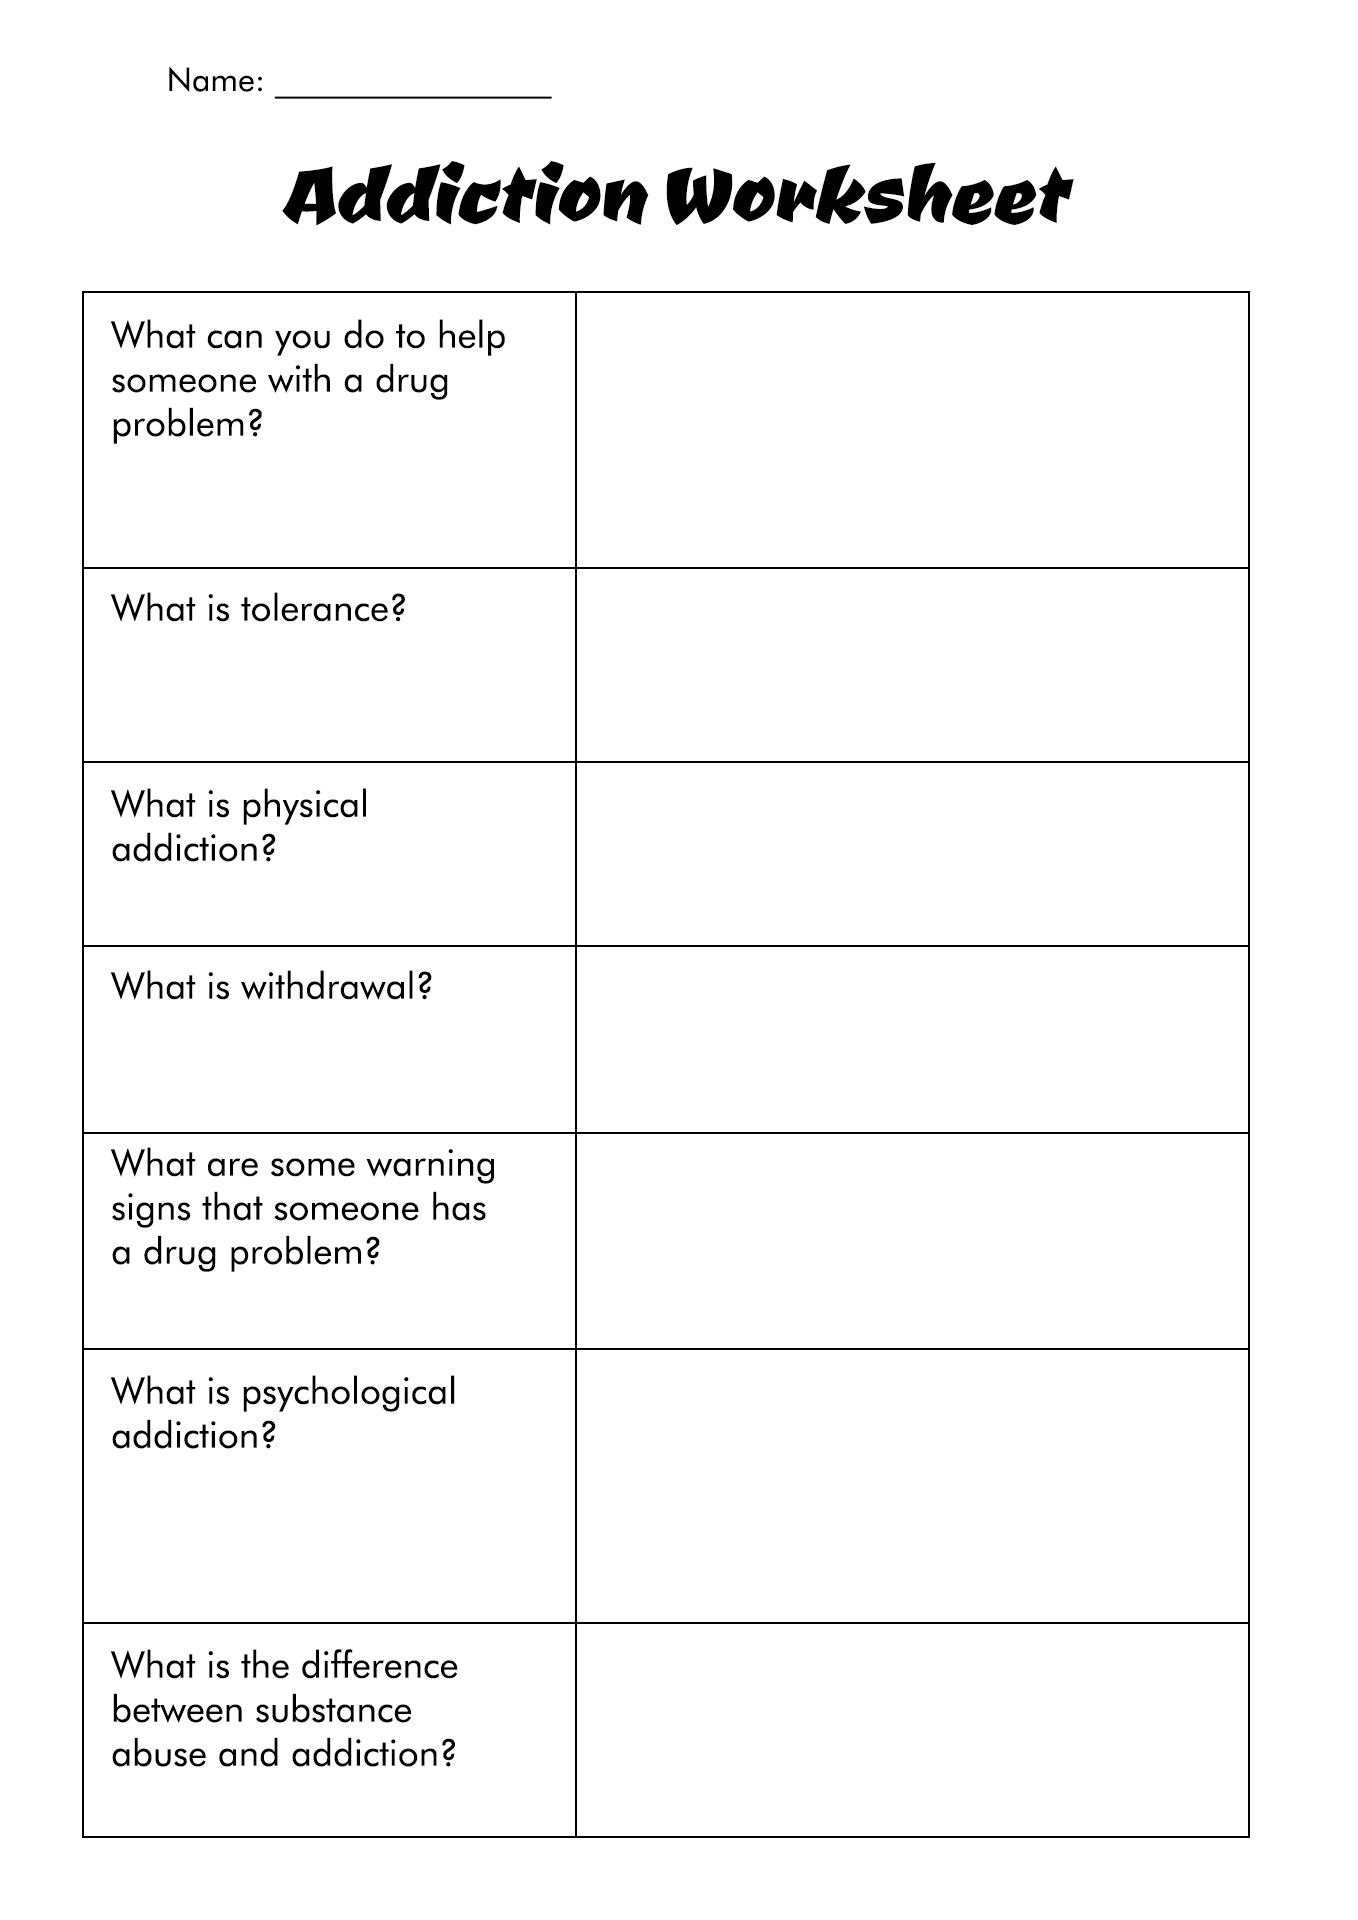 Language Arts Kindergarten Worksheetsn Core Th Grade Worksheets Free Pre K Activities Easy Worksheet Ideas First Verbs And Adjectives About I Can Read Words Sped Pinterest Pictures likewise Aeb E D D F Daycare Ideas School Ideas as well F Fcb Db D B D Eb Alexander Fleming Bremen in addition Language Arts Kindergarten Worksheetsn Core Th Grade Worksheets Free Pre K Activities Easy Worksheet Ideas First Verbs And Adjectives About I Can Read Words Sped Pinterest Pictures X further Drug Addiction Recovery Worksheets. on fun weather worksheet printable study material pinterest free